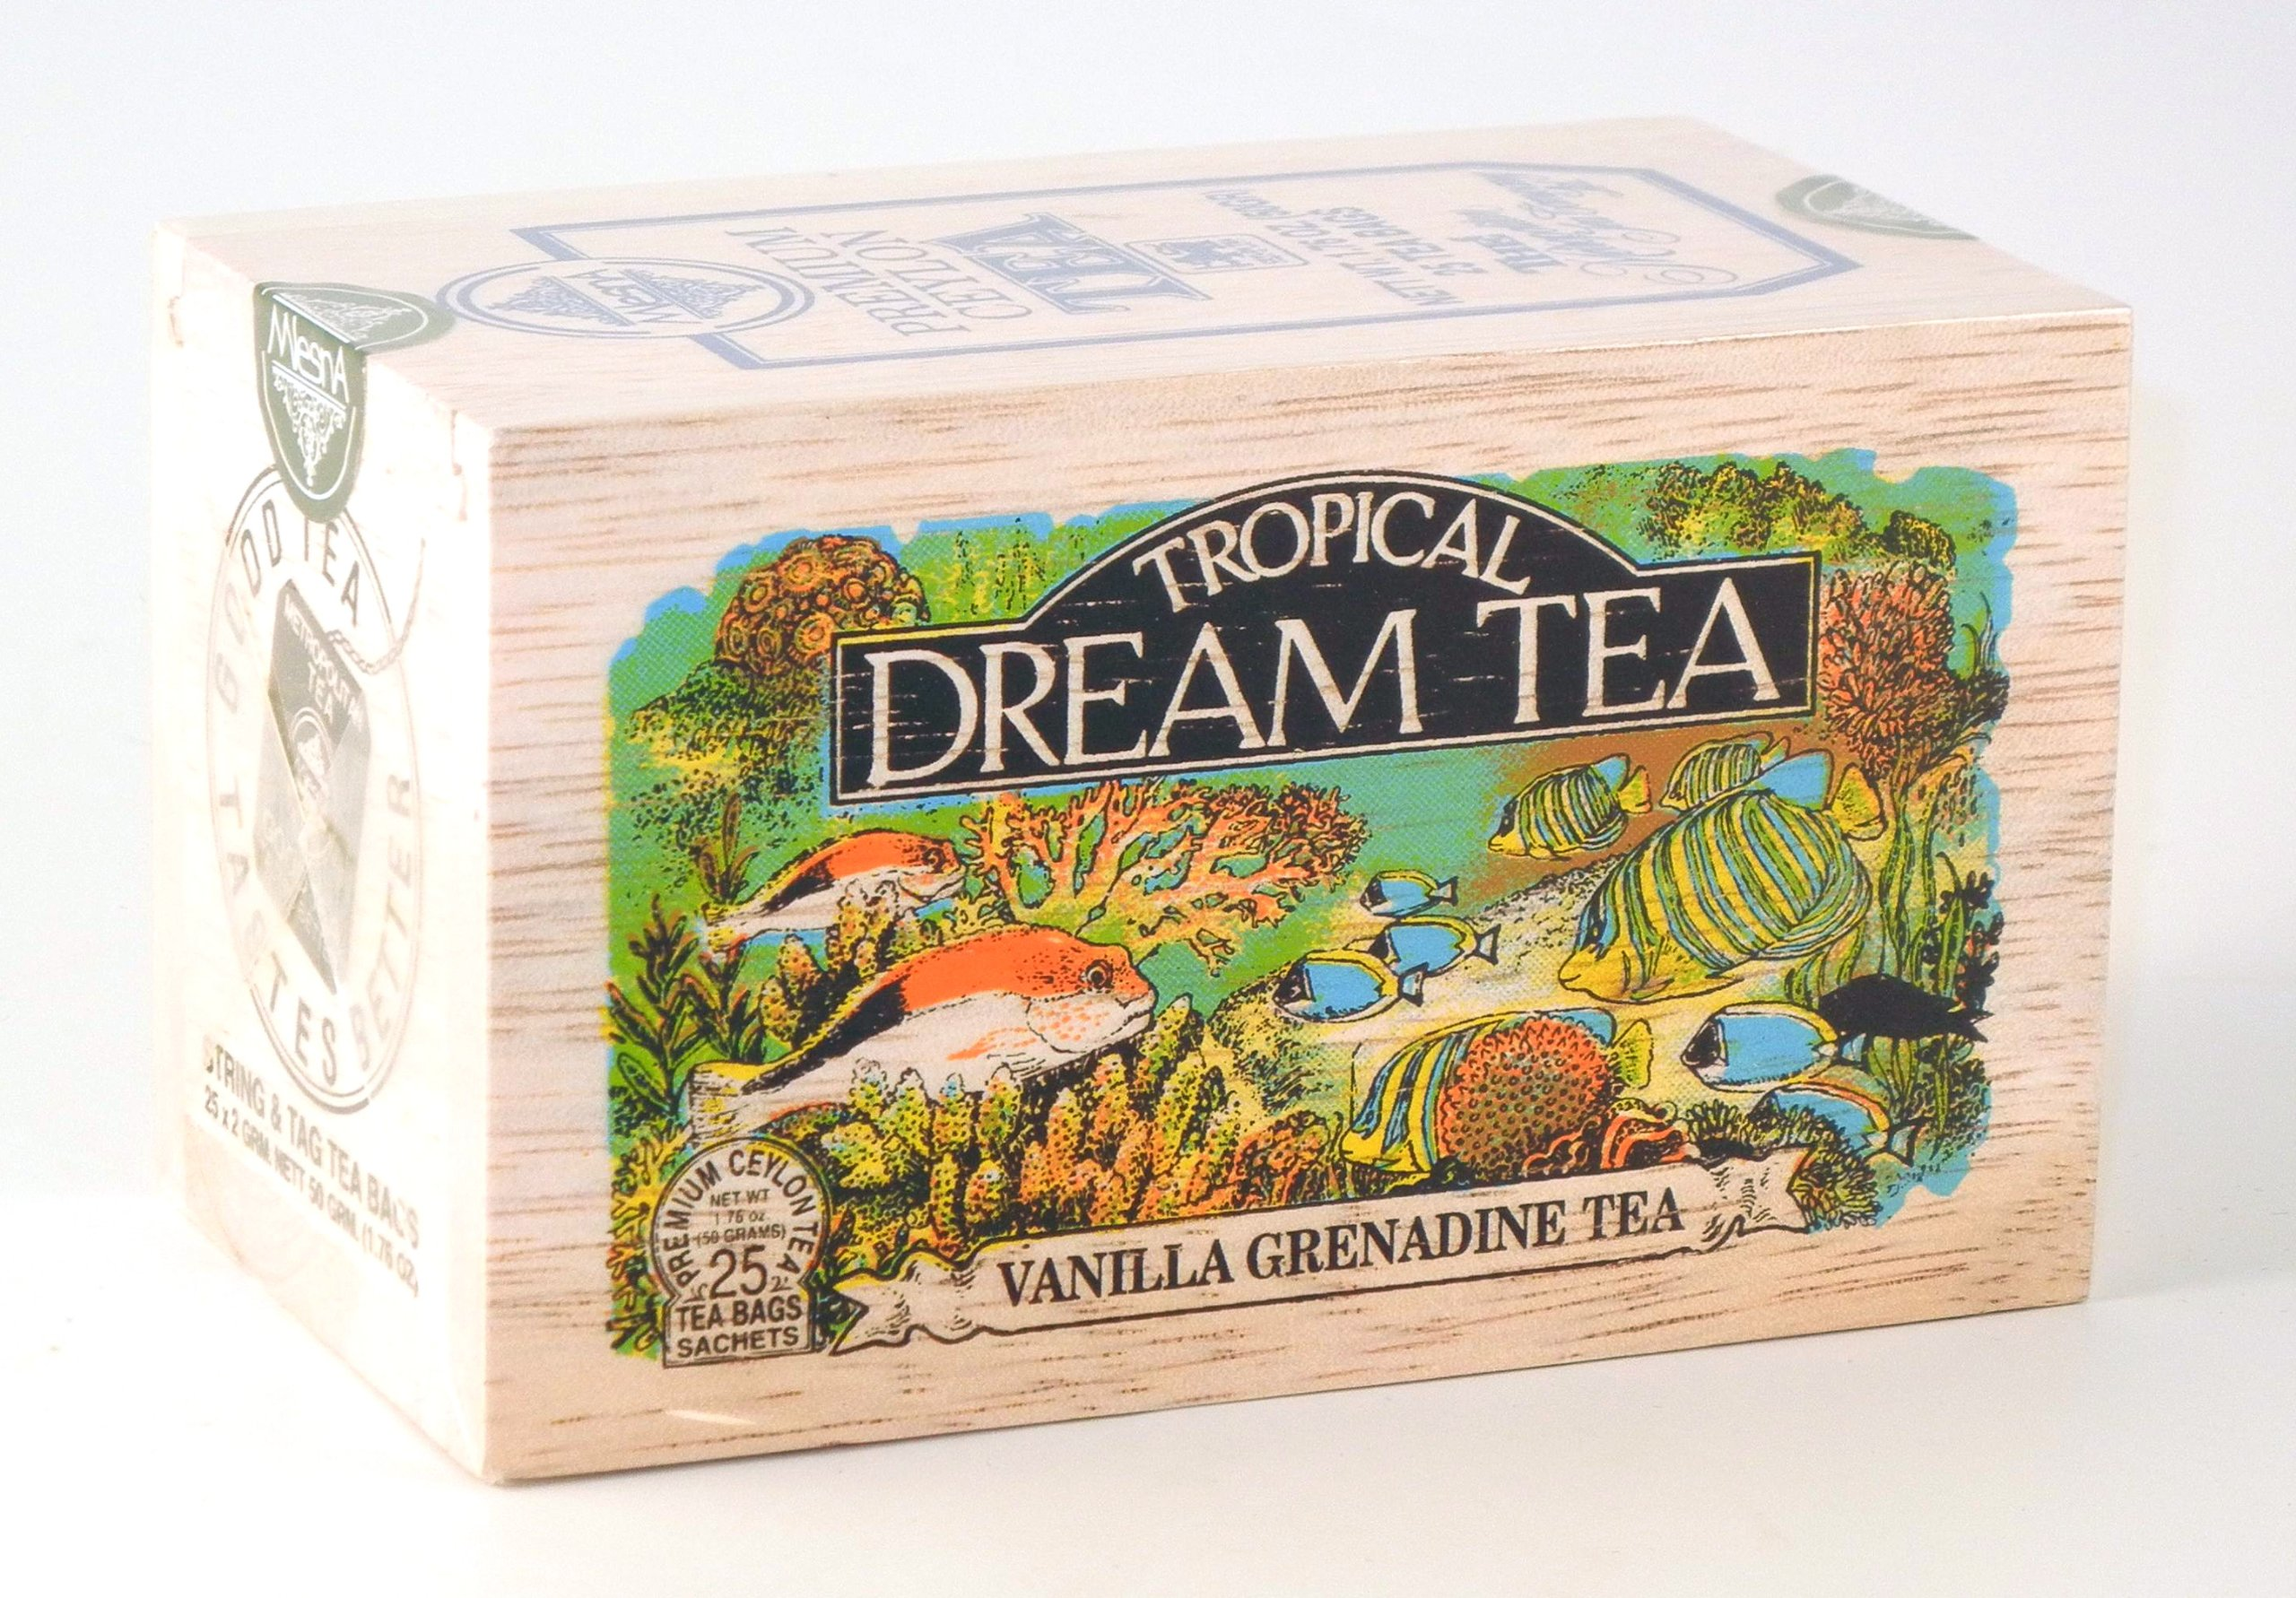 Tropical Dream Vanilla Grenadine Flavored Ceylon Black Tea, 25 Bags in Decorative Wood Crate - SALE